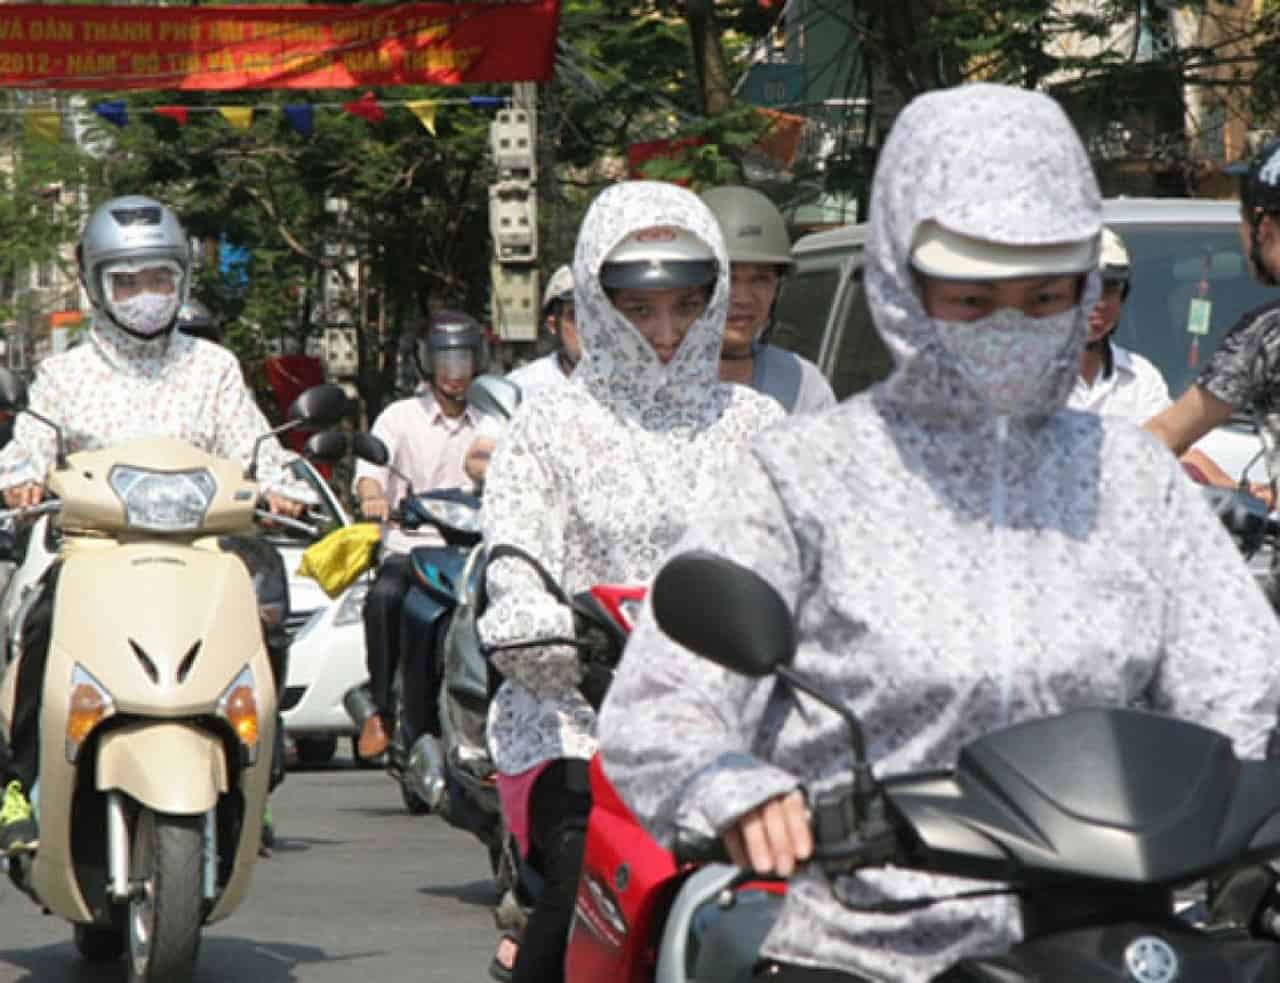 Vietnamese motorbike drivers shielded from the sun